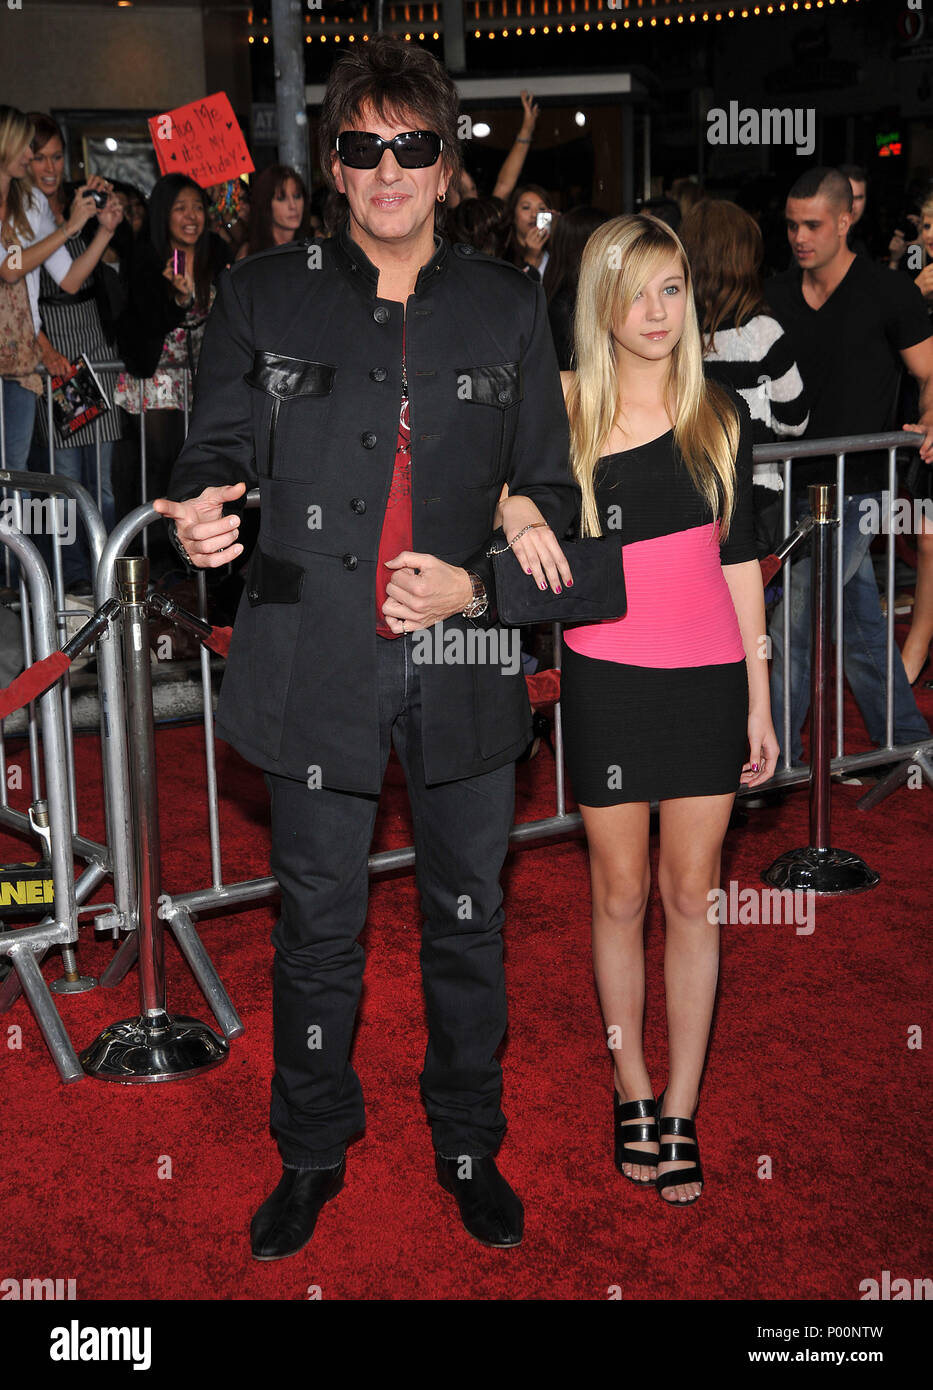 Richie Sambora and daughter   - THE TWILIGHT SAGA NEW MOON Premiere at the Westwood Village Theatre In Los Angeles.SamboraRichie_daughter_169  Event in Hollywood Life - California, Red Carpet Event, USA, Film Industry, Celebrities, Photography, Bestof, Arts Culture and Entertainment, Celebrities fashion, Best of, Hollywood Life, Event in Hollywood Life - California, Red Carpet and backstage, Music celebrities, Topix, Couple, family ( husband and wife ) and kids- Children, brothers and sisters inquiry tsuni@Gamma-USA.com, Credit Tsuni / USA, 2006 to 2009 - Stock Image